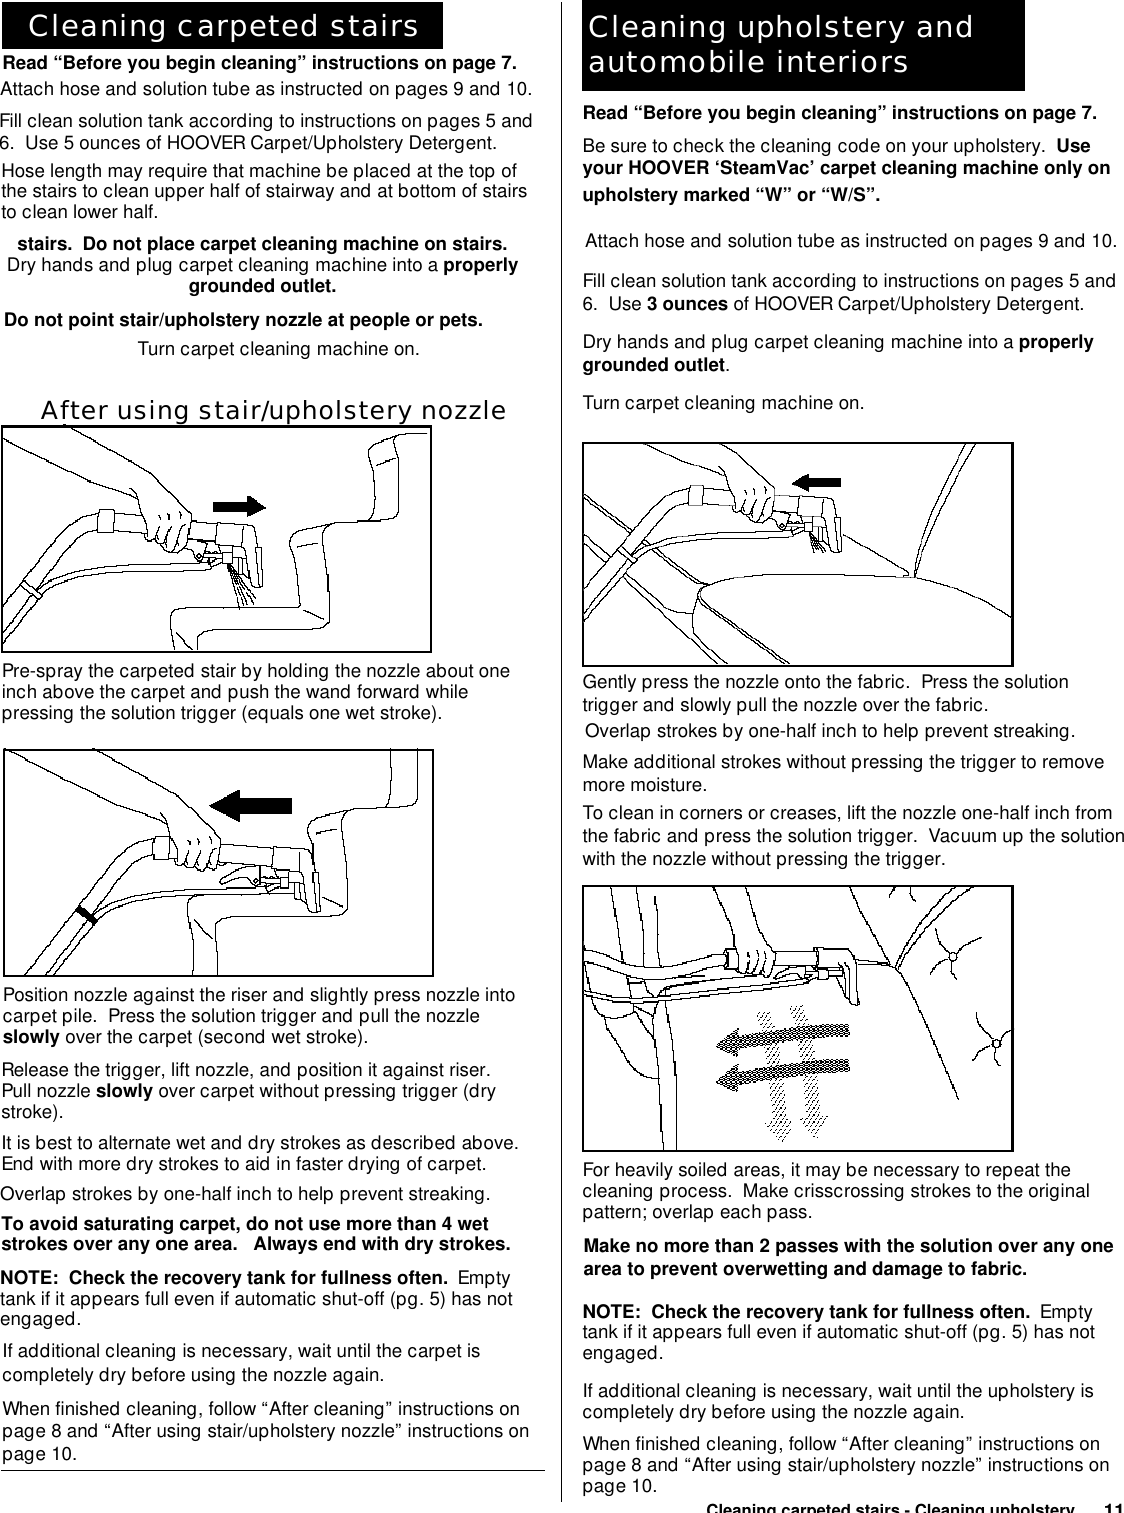 Hoover instruction manuals